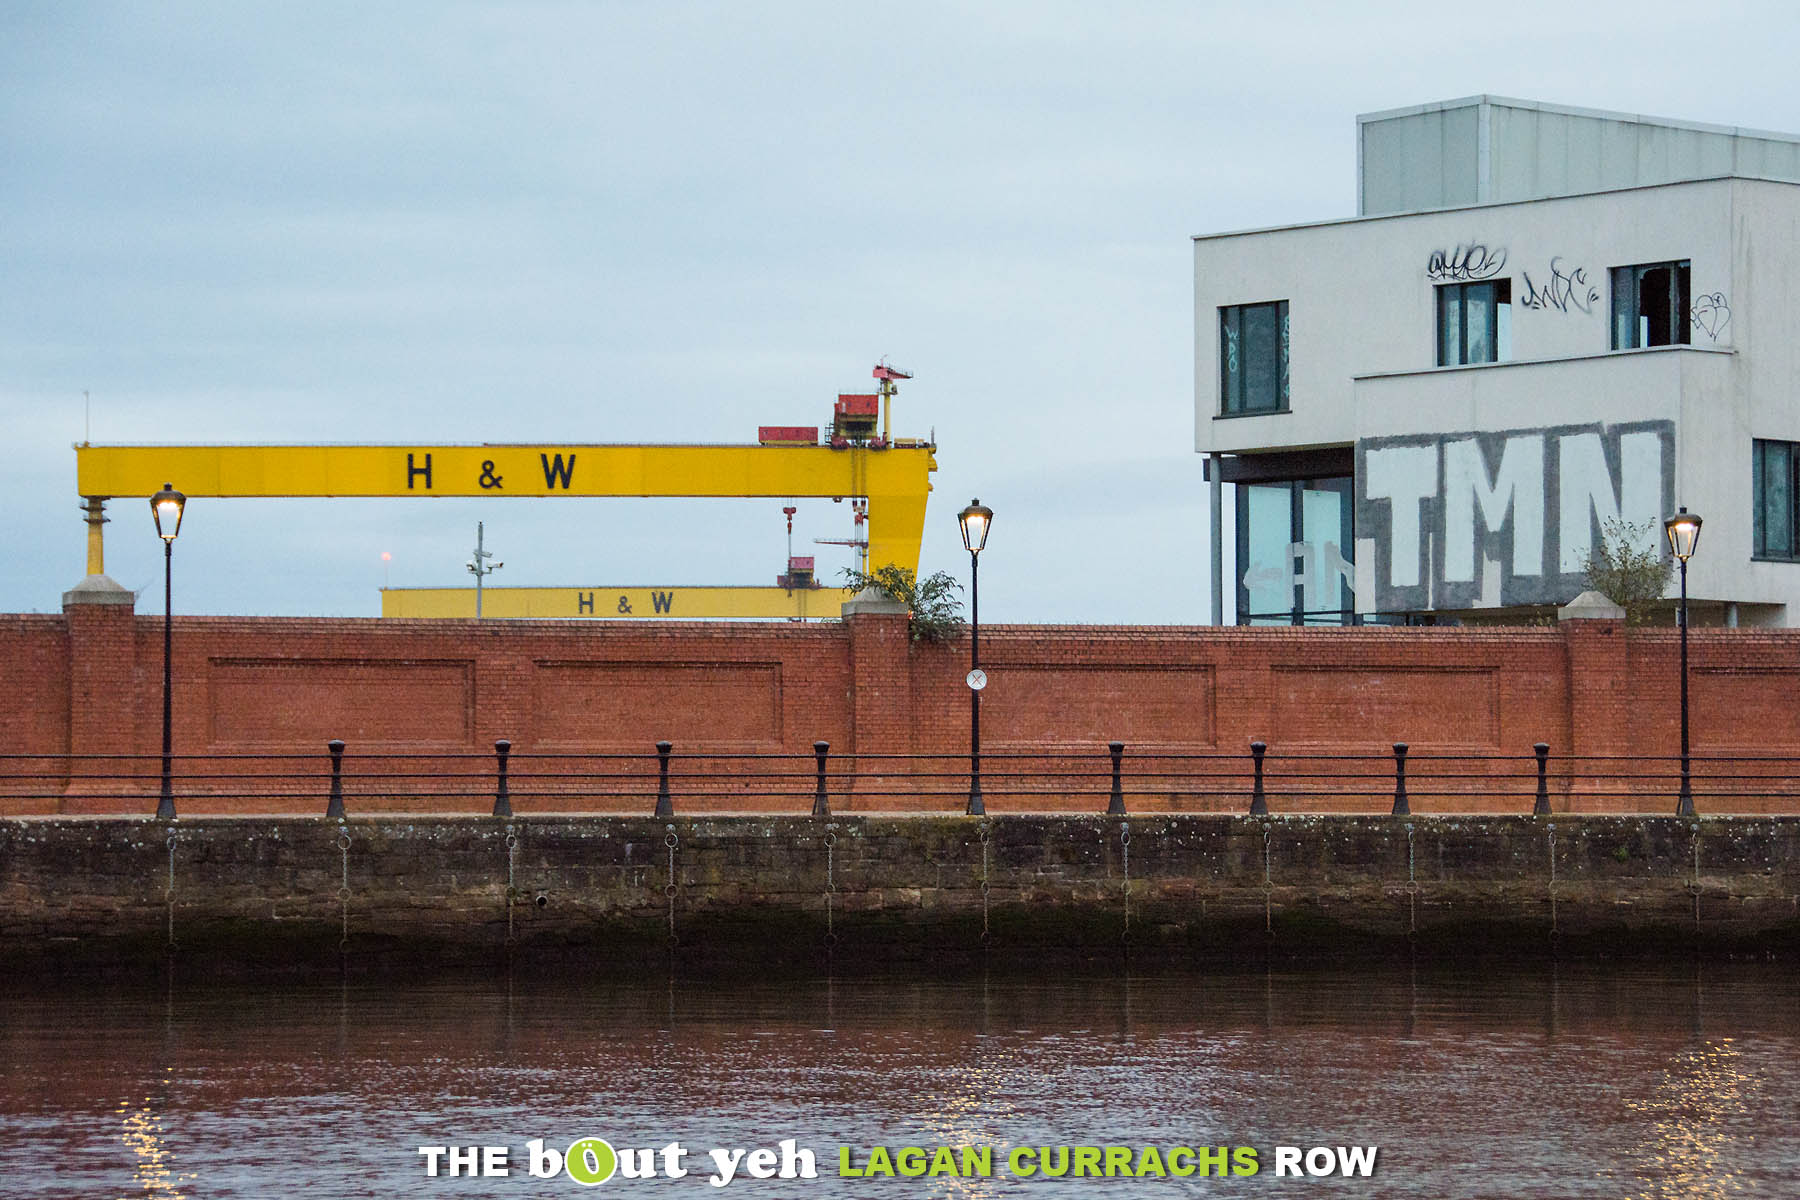 Harland and Wolff cranes and TMN graffiti photographed from the River Lagan, Belfast - photo 9250.